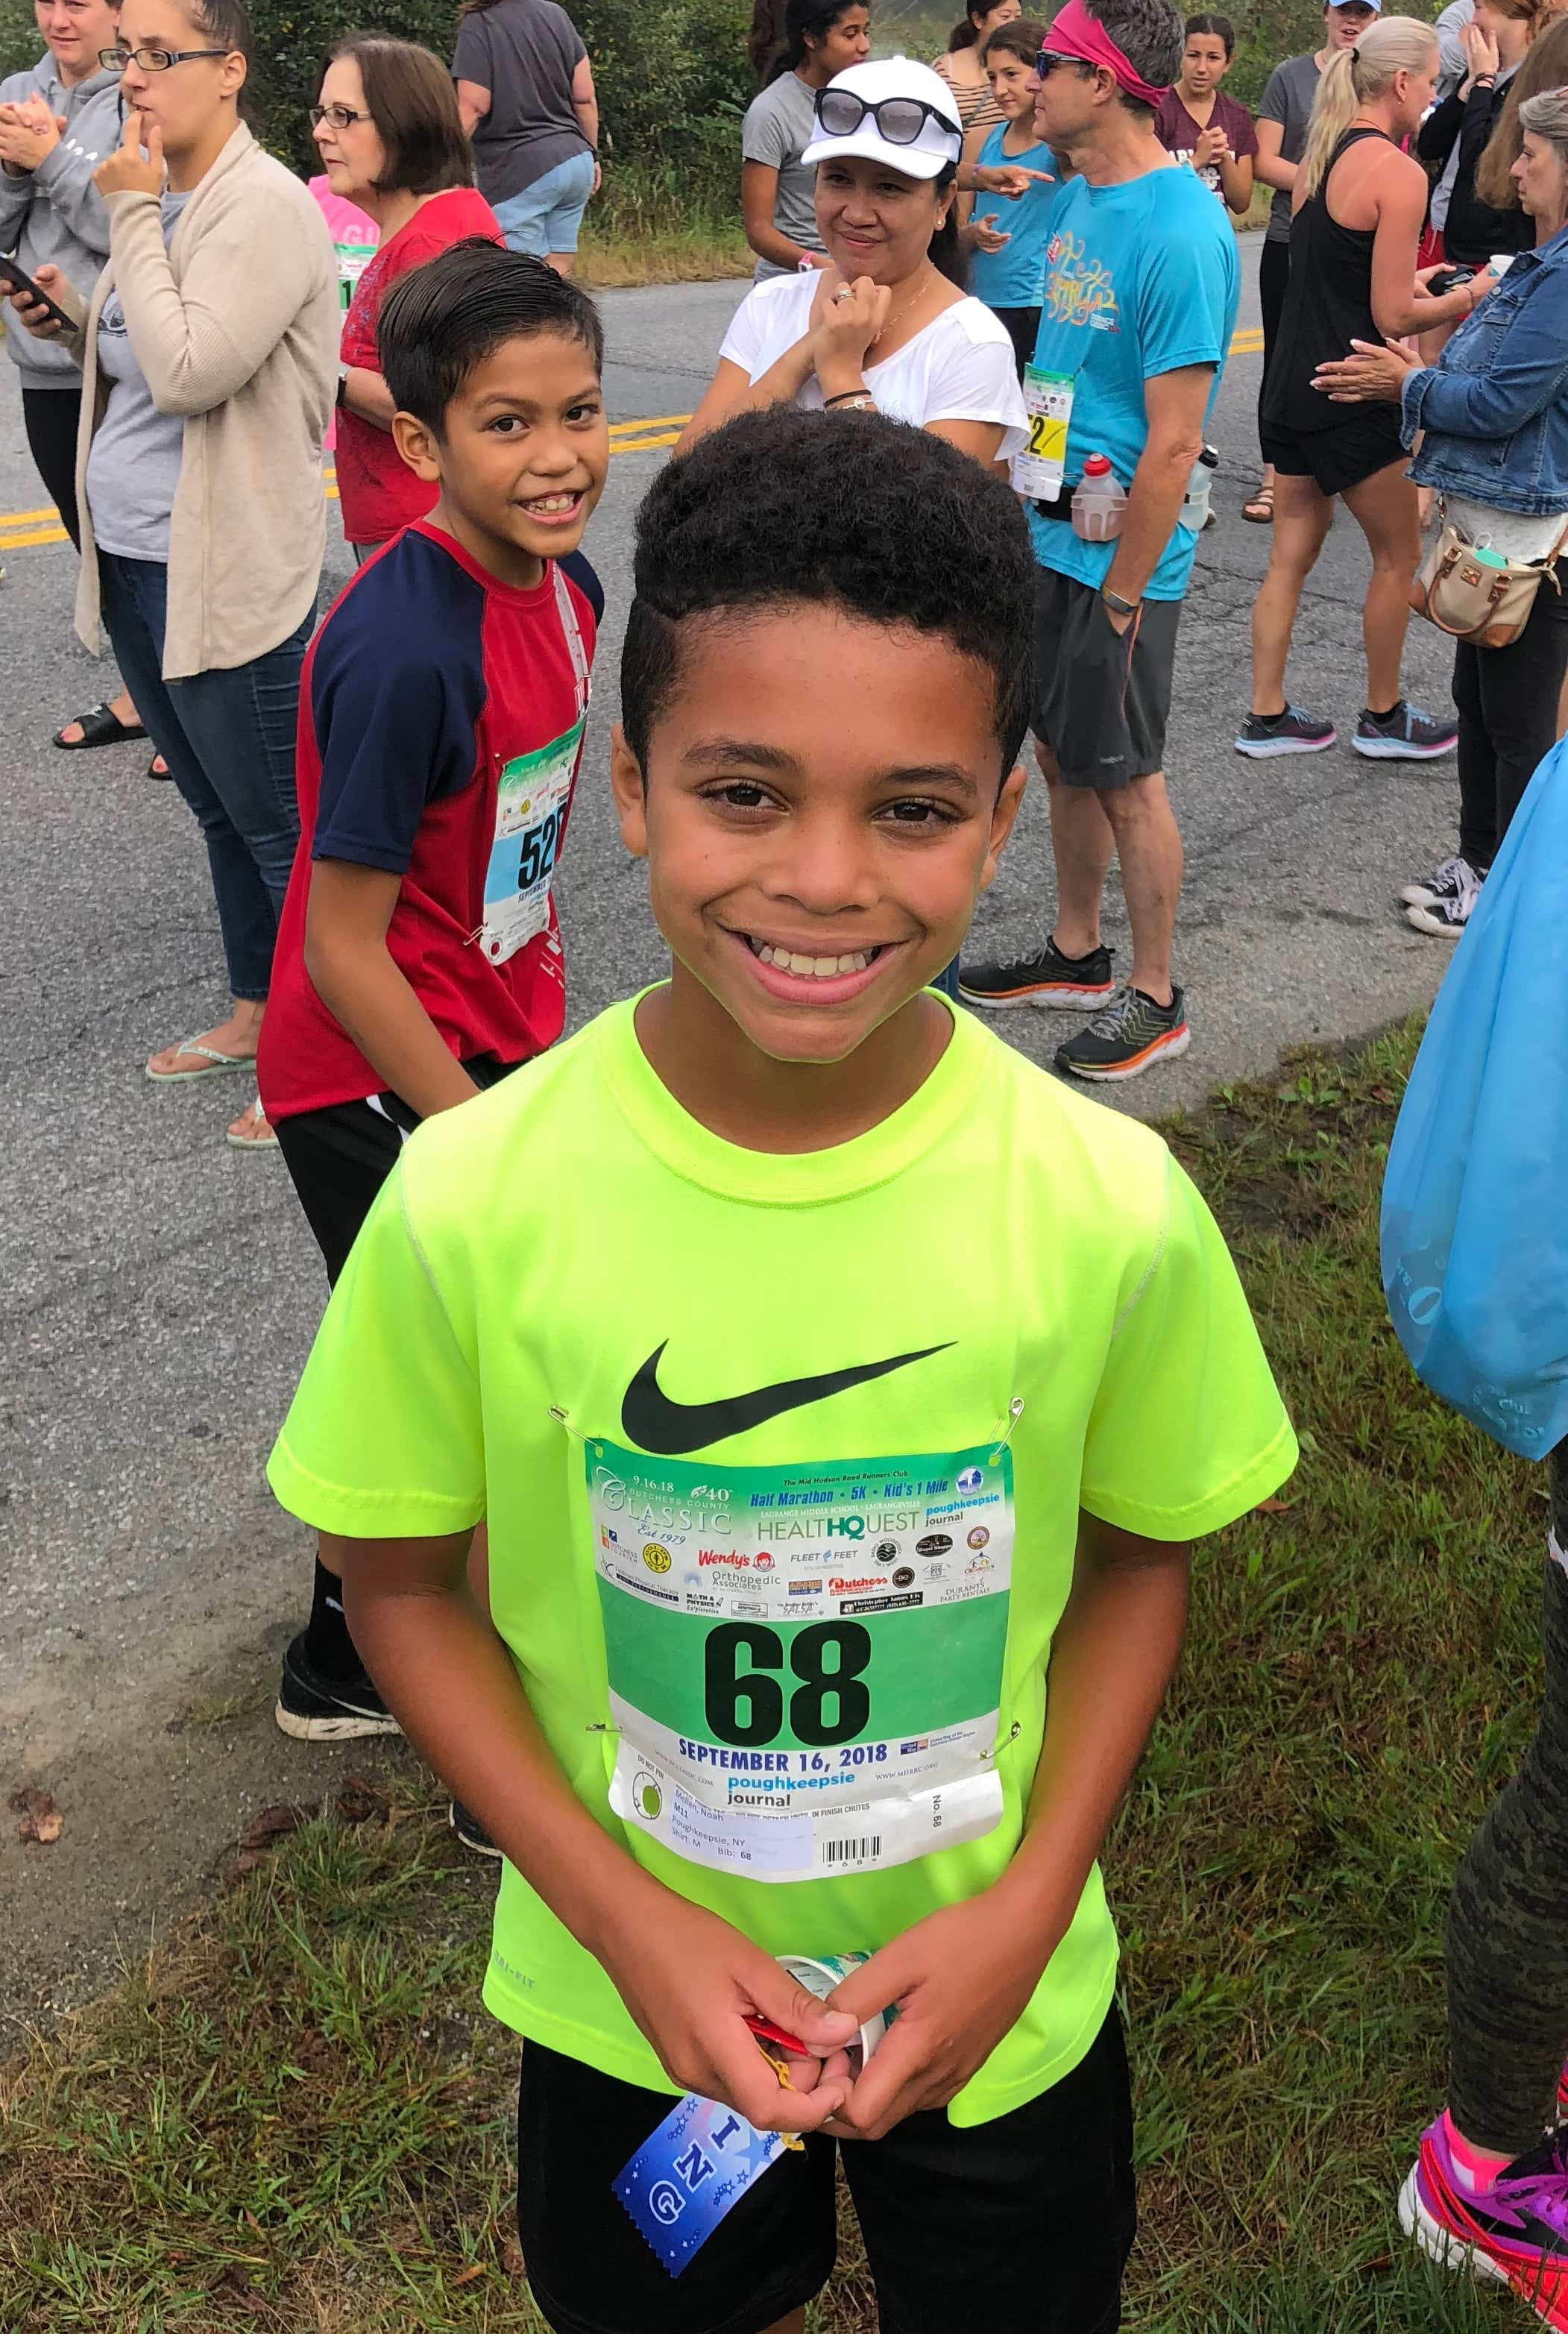 VIDEO: Runners react after the 40th annual Dutchess County Classic